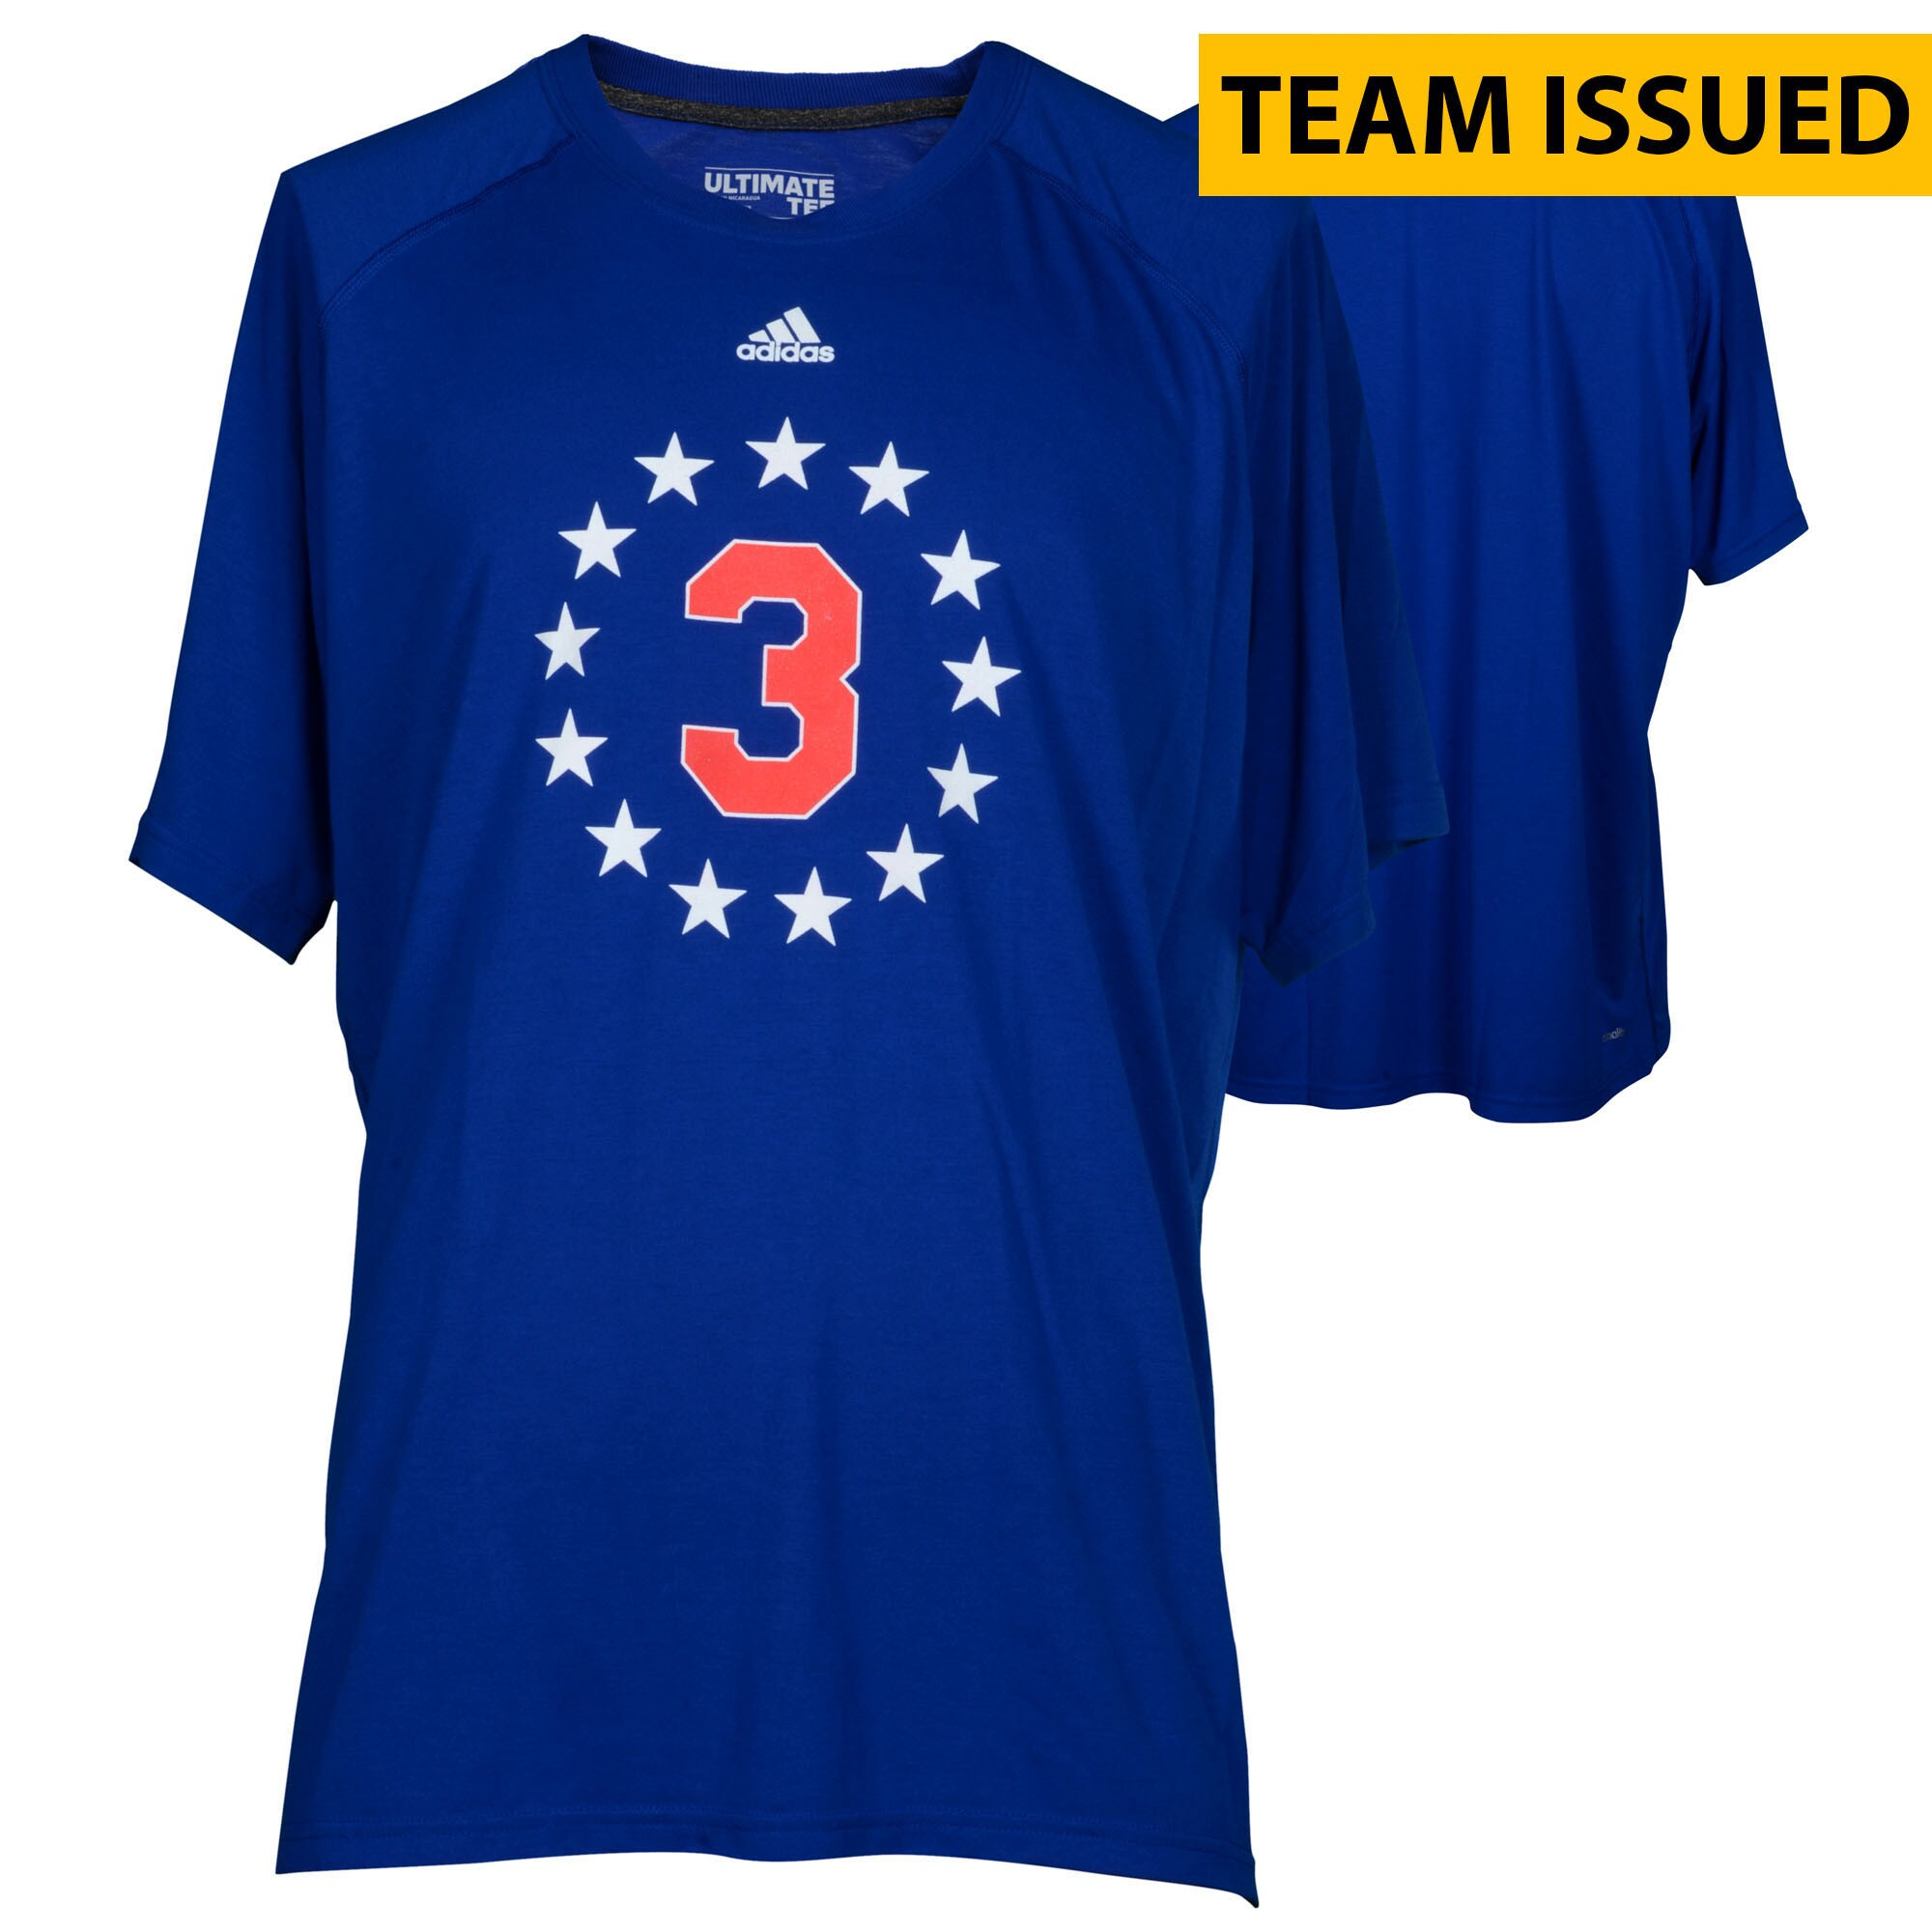 Philadelphia 76ers Fanatics Authentic Team-Issued Blue Iverson Night Shooter Shirt from the 2016-17 NBA Season - Size Large